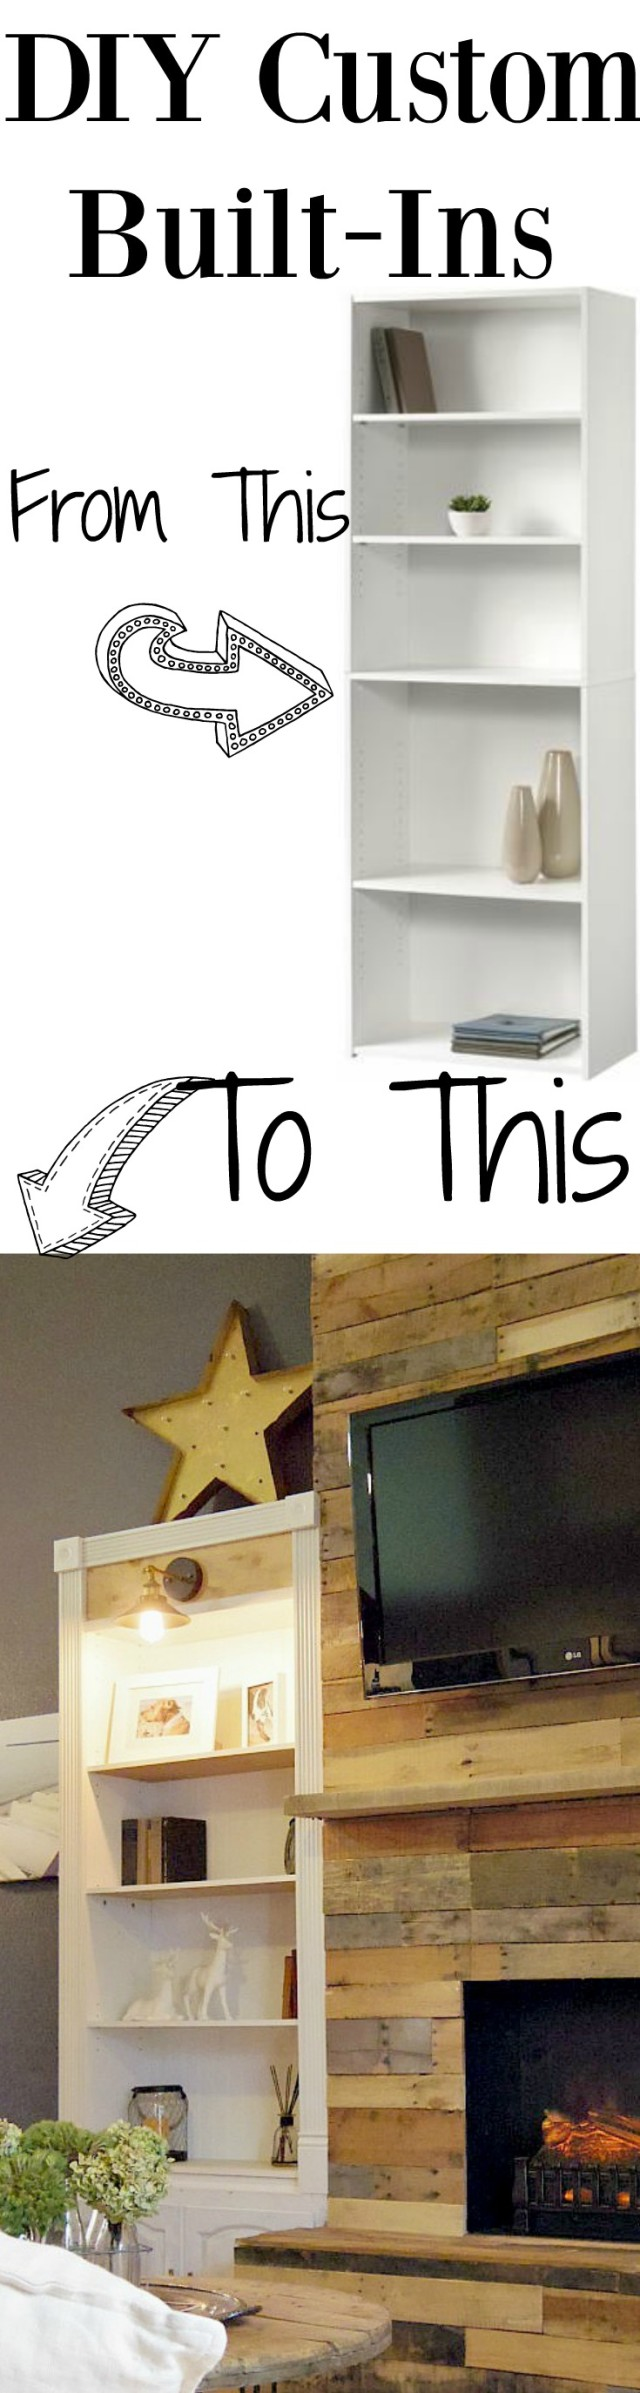 DIY Custom Built-ins PIn image